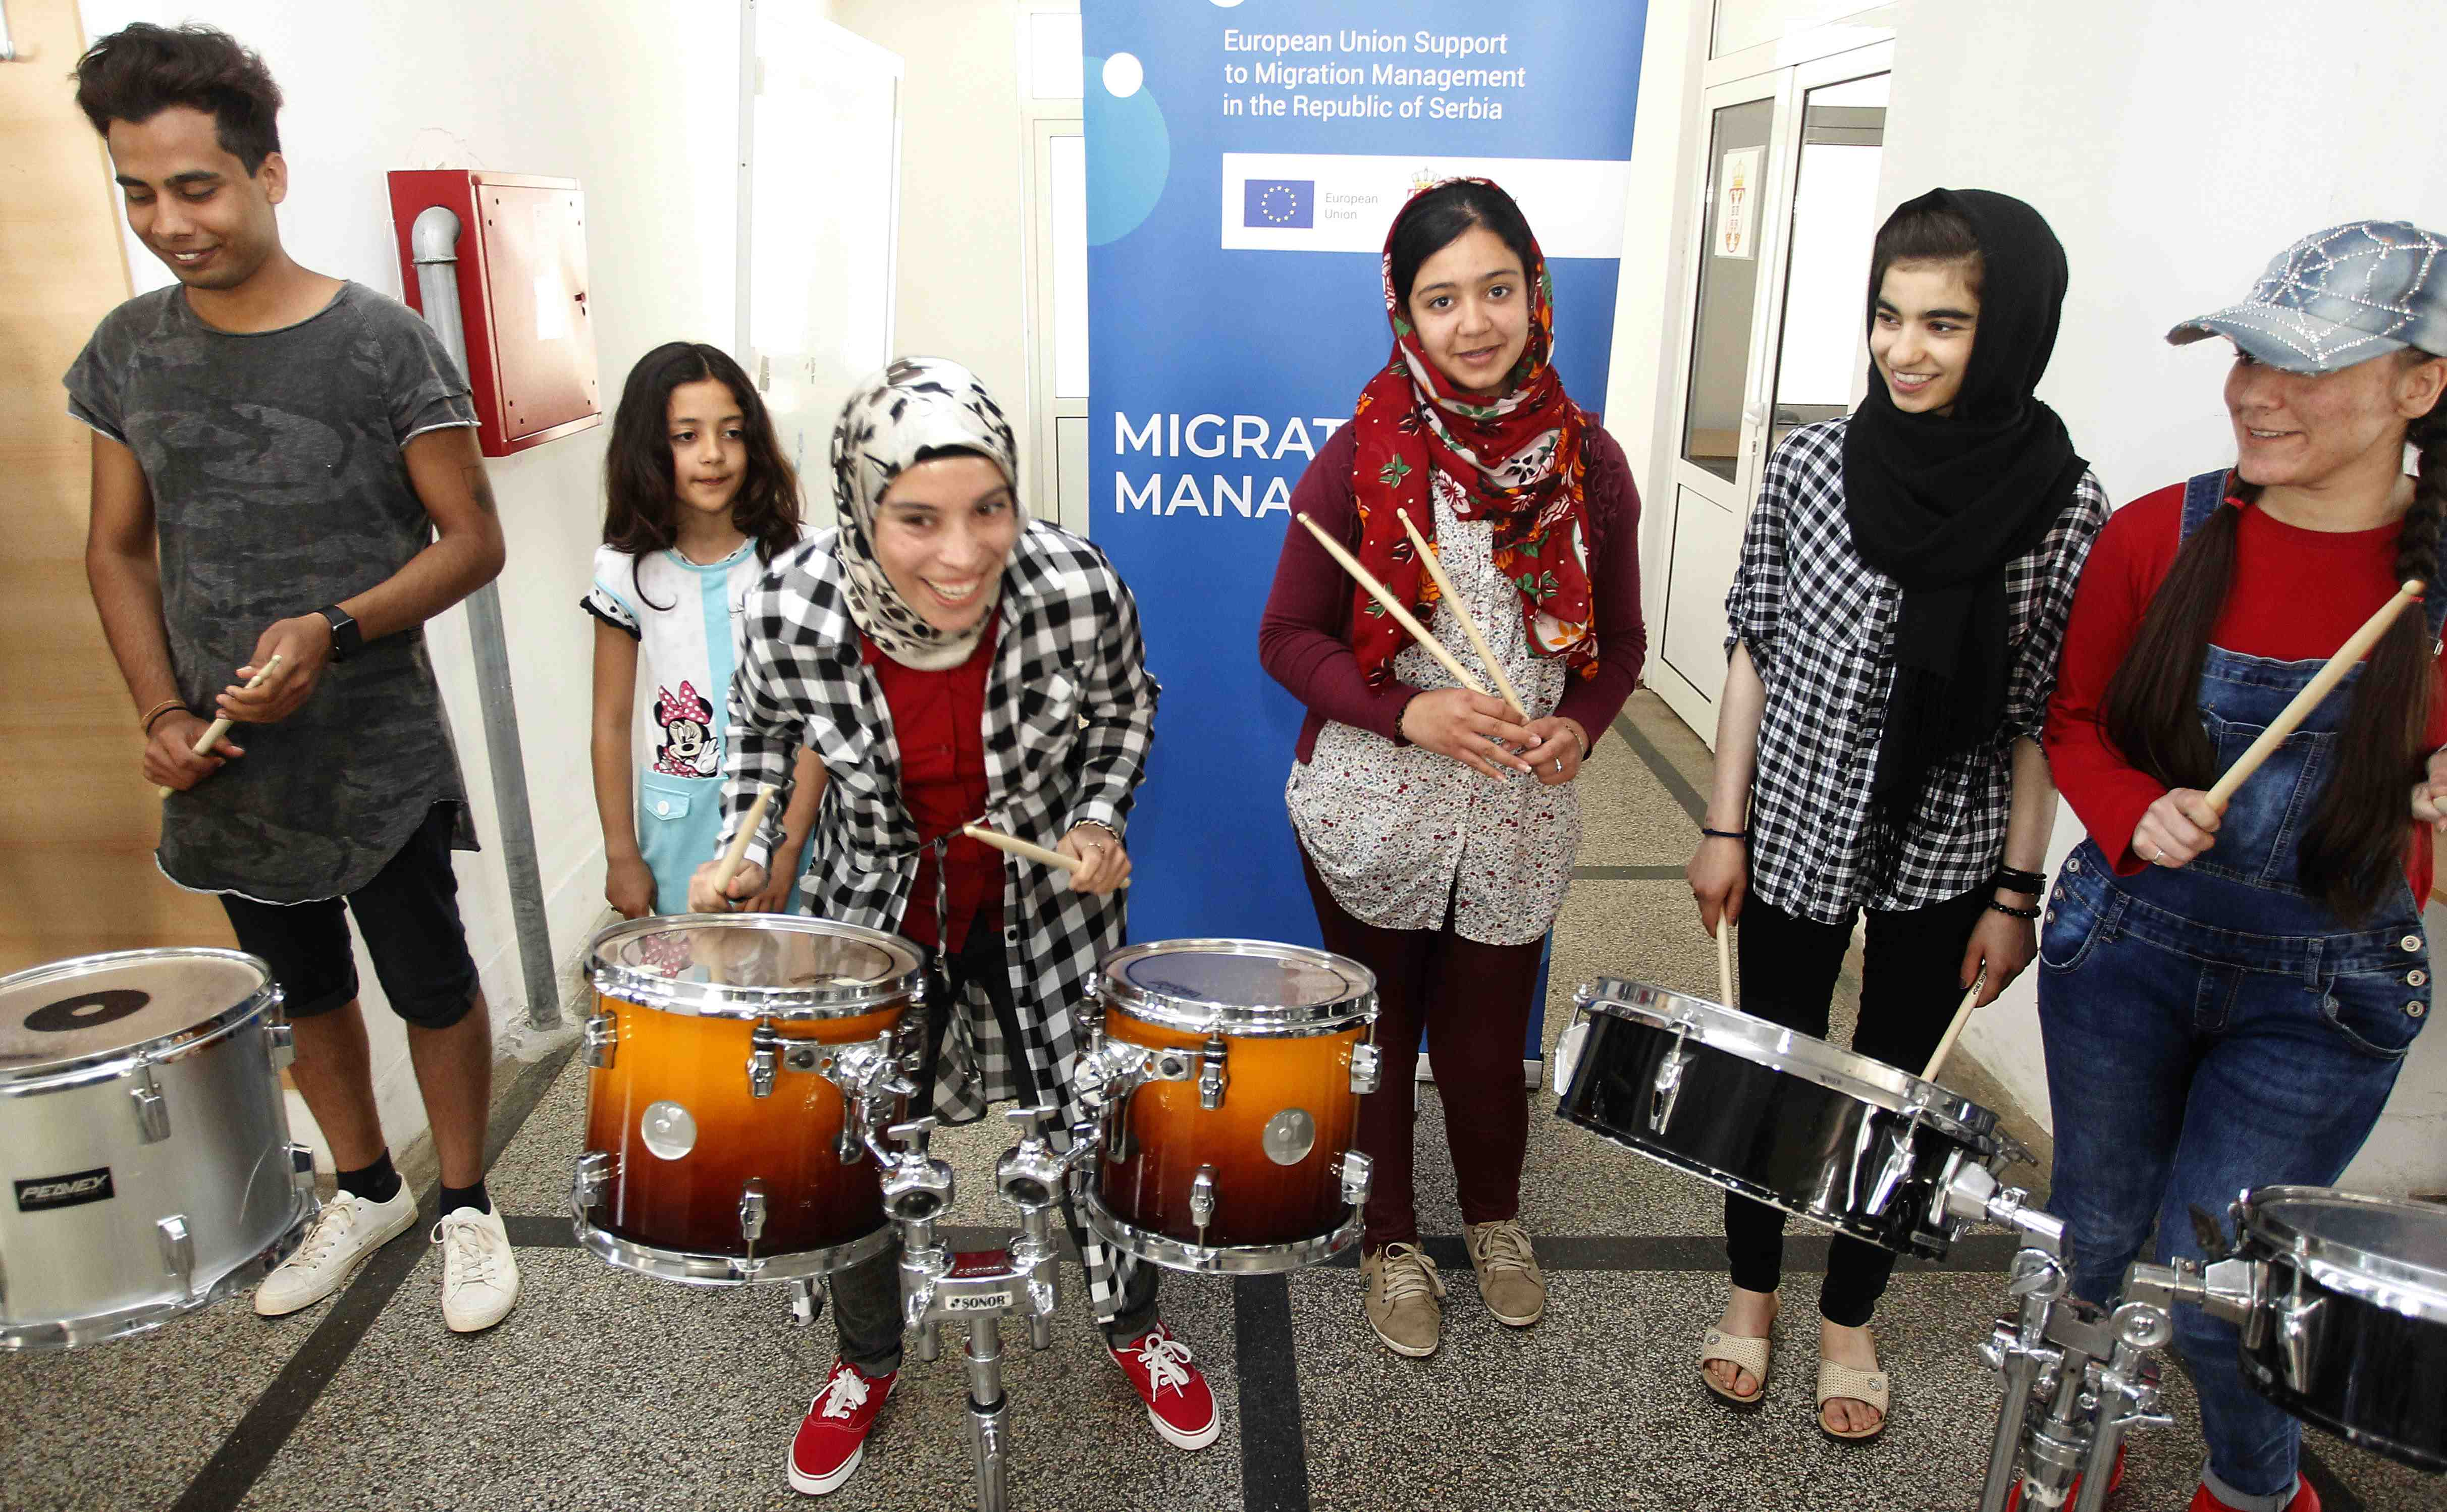 Percussion workshop for young migrants in Presevo and Pirot